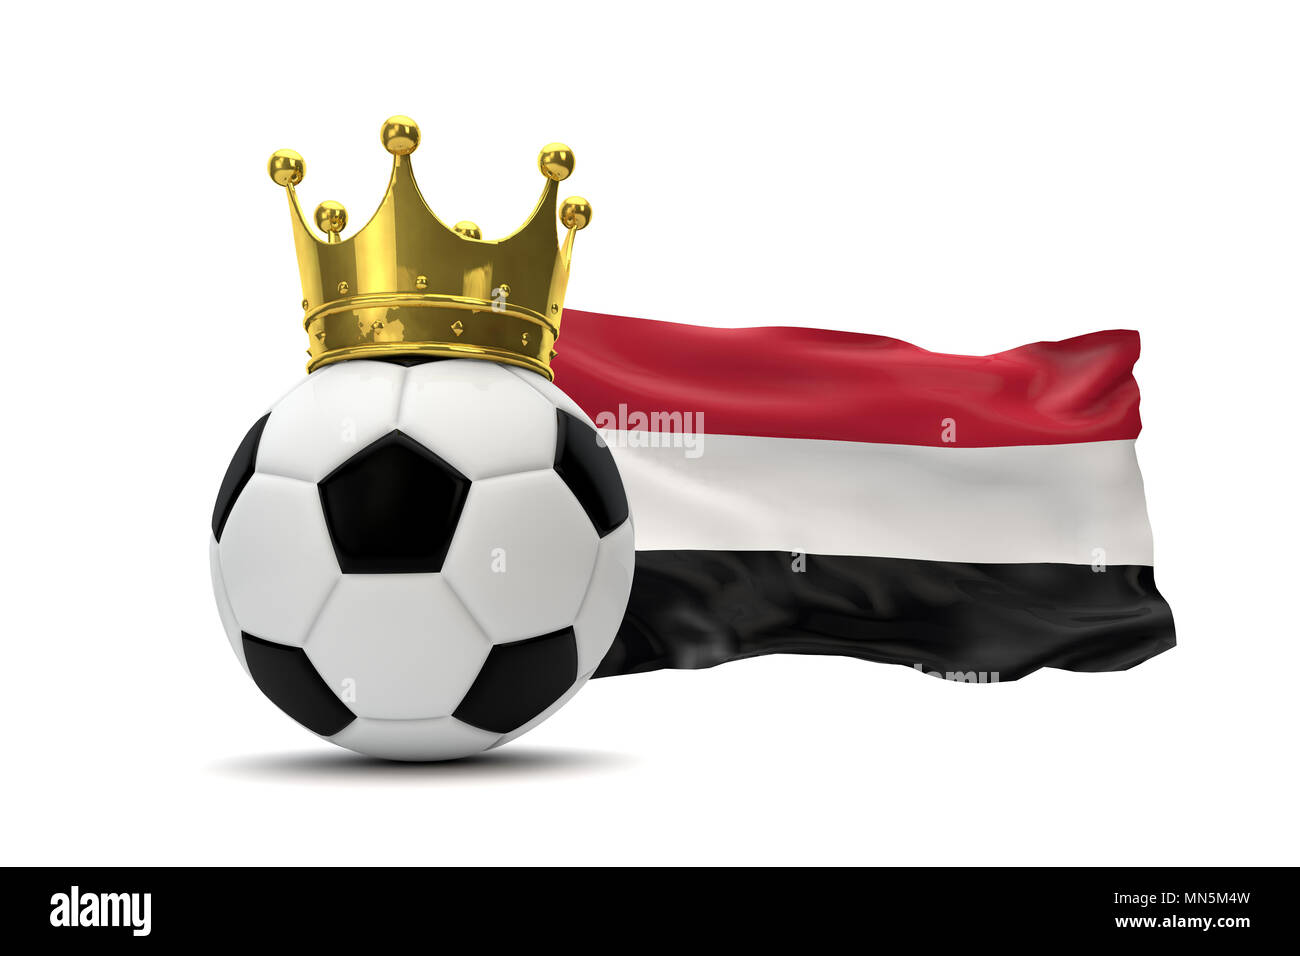 Yemen flag and soccer ball with gold crown. 3D Rendering - Stock Image